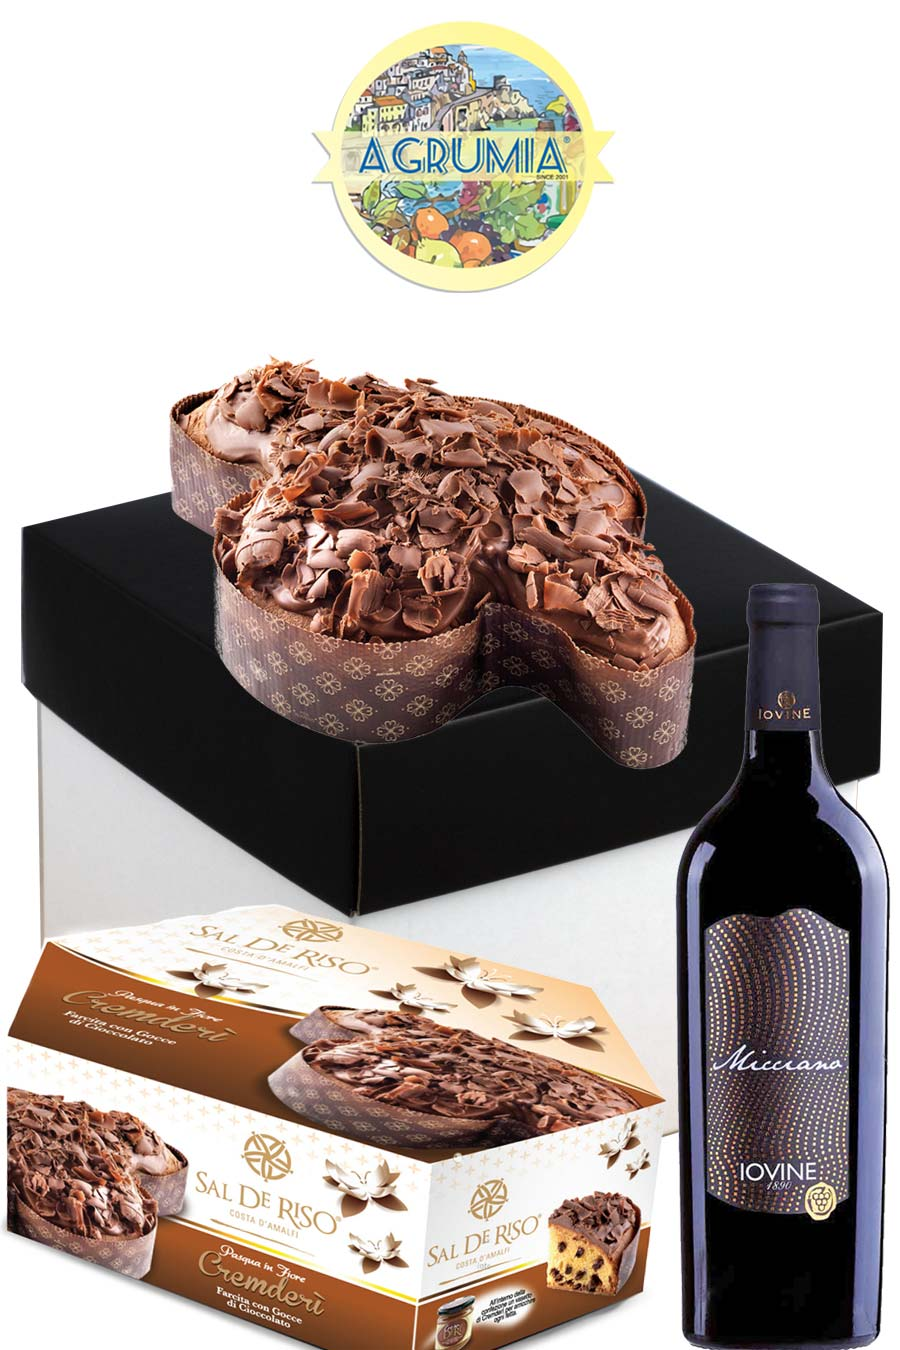 The Italian Gourmet Easter Hamper - Agrumia